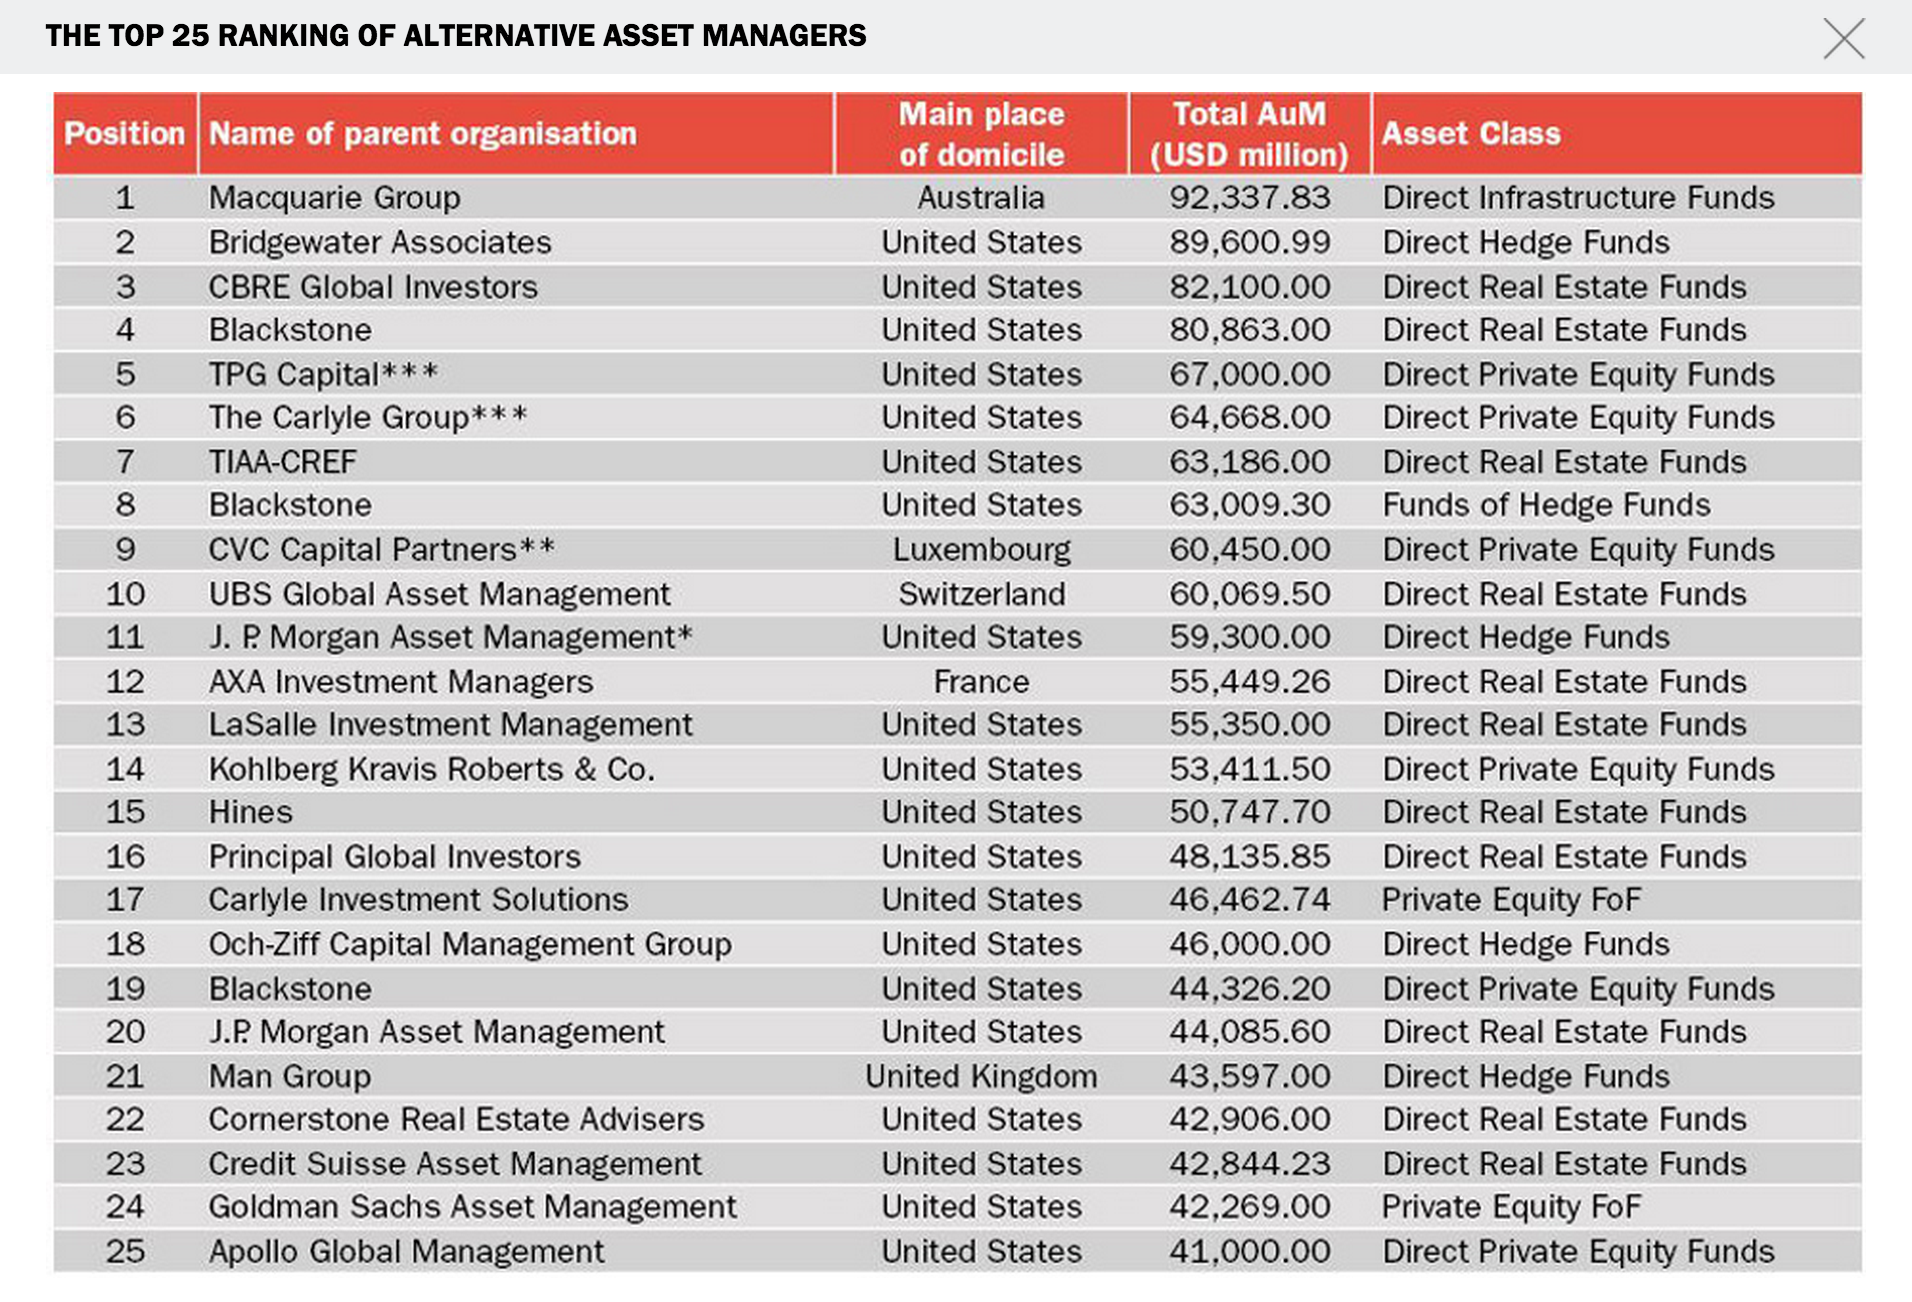 Top 25 Alternative Asset Managers